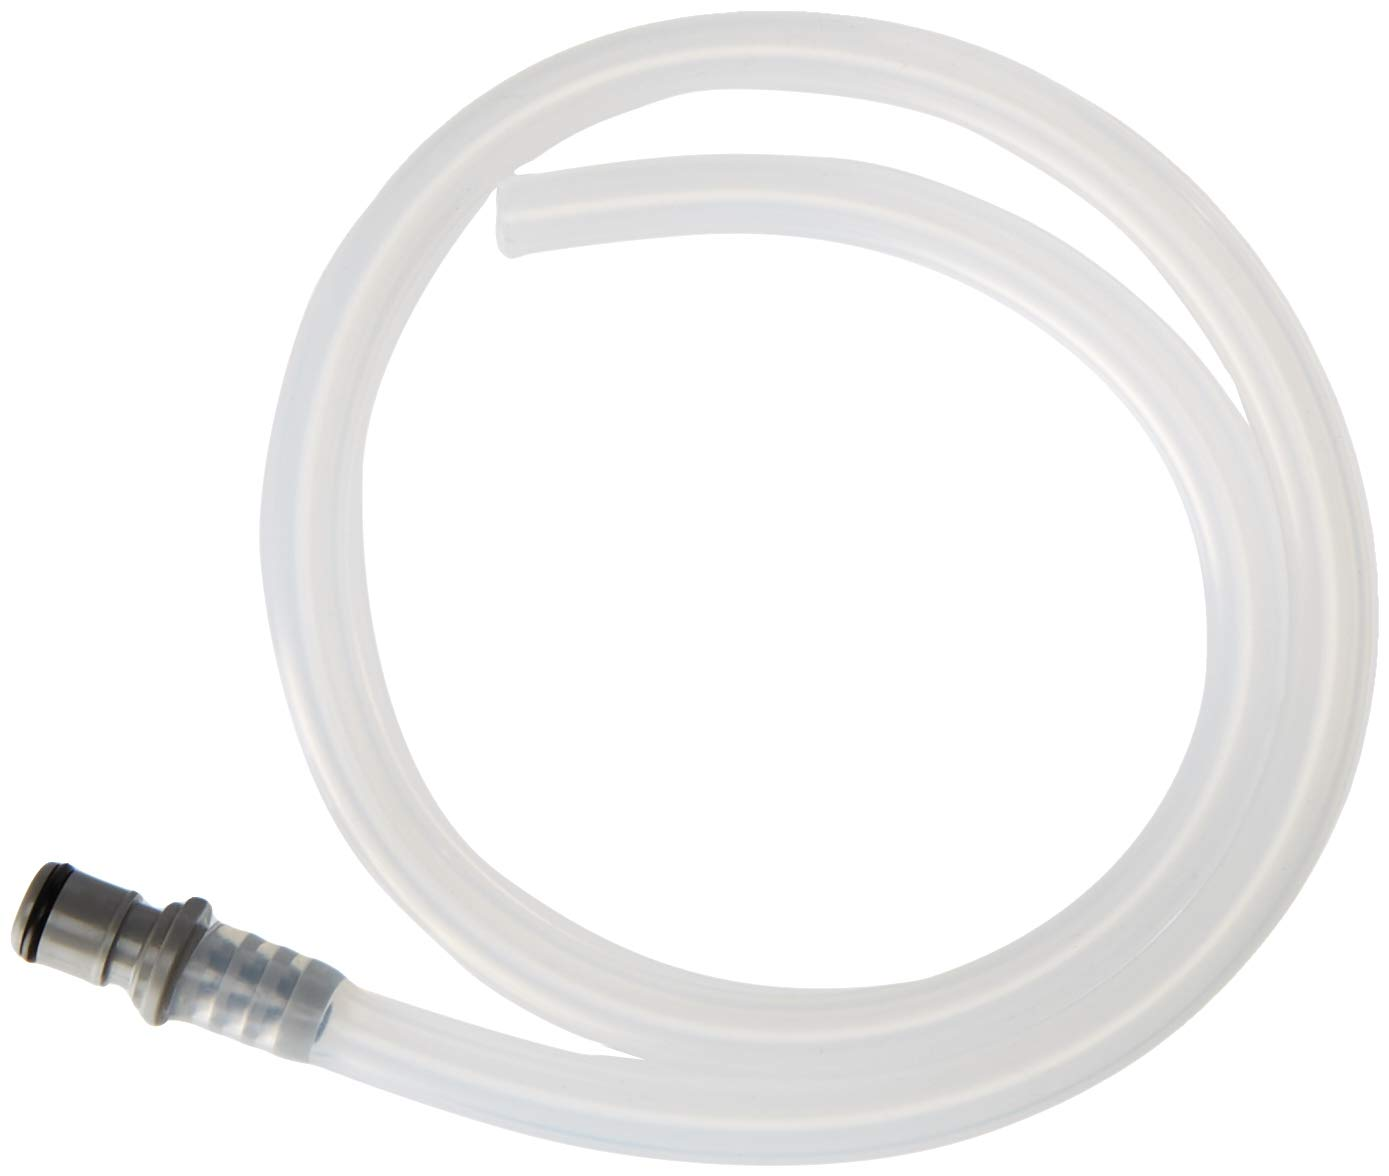 Platypus Big Zip EVO Hydration System Water Filter Connector Kit